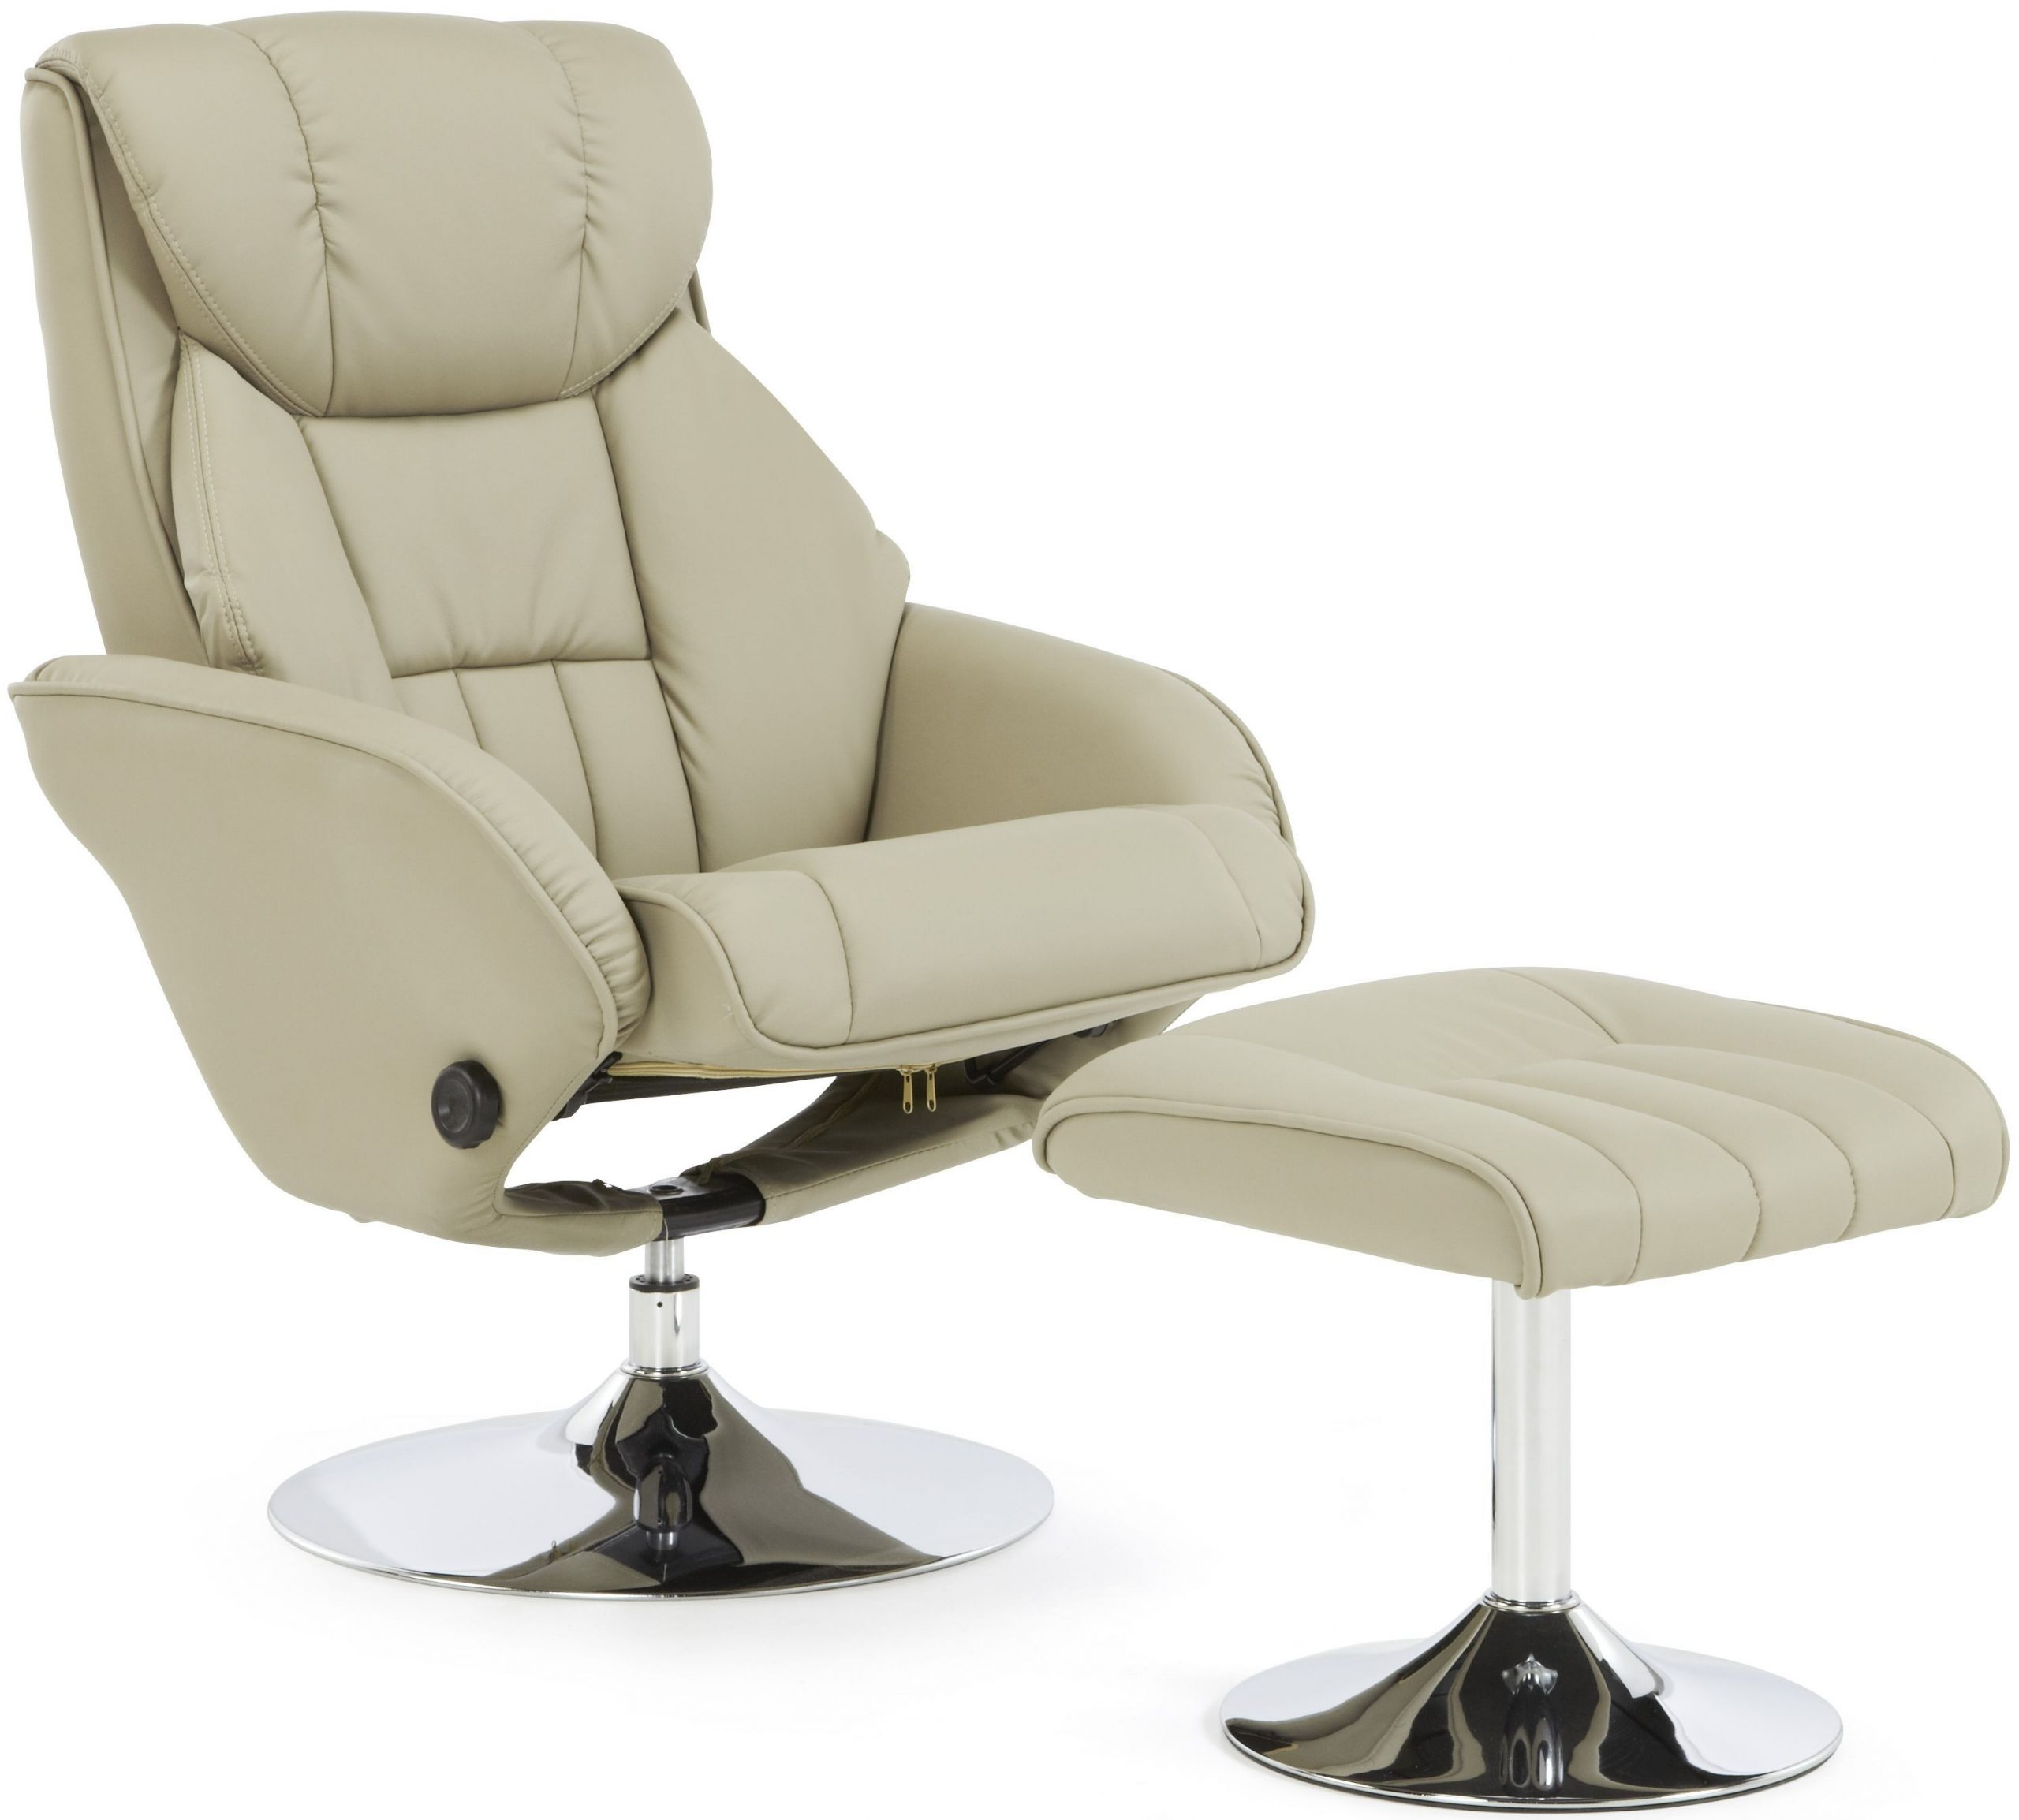 Serene Larvik Taupe Faux Leather Recliner Chair – CFS Furniture UK